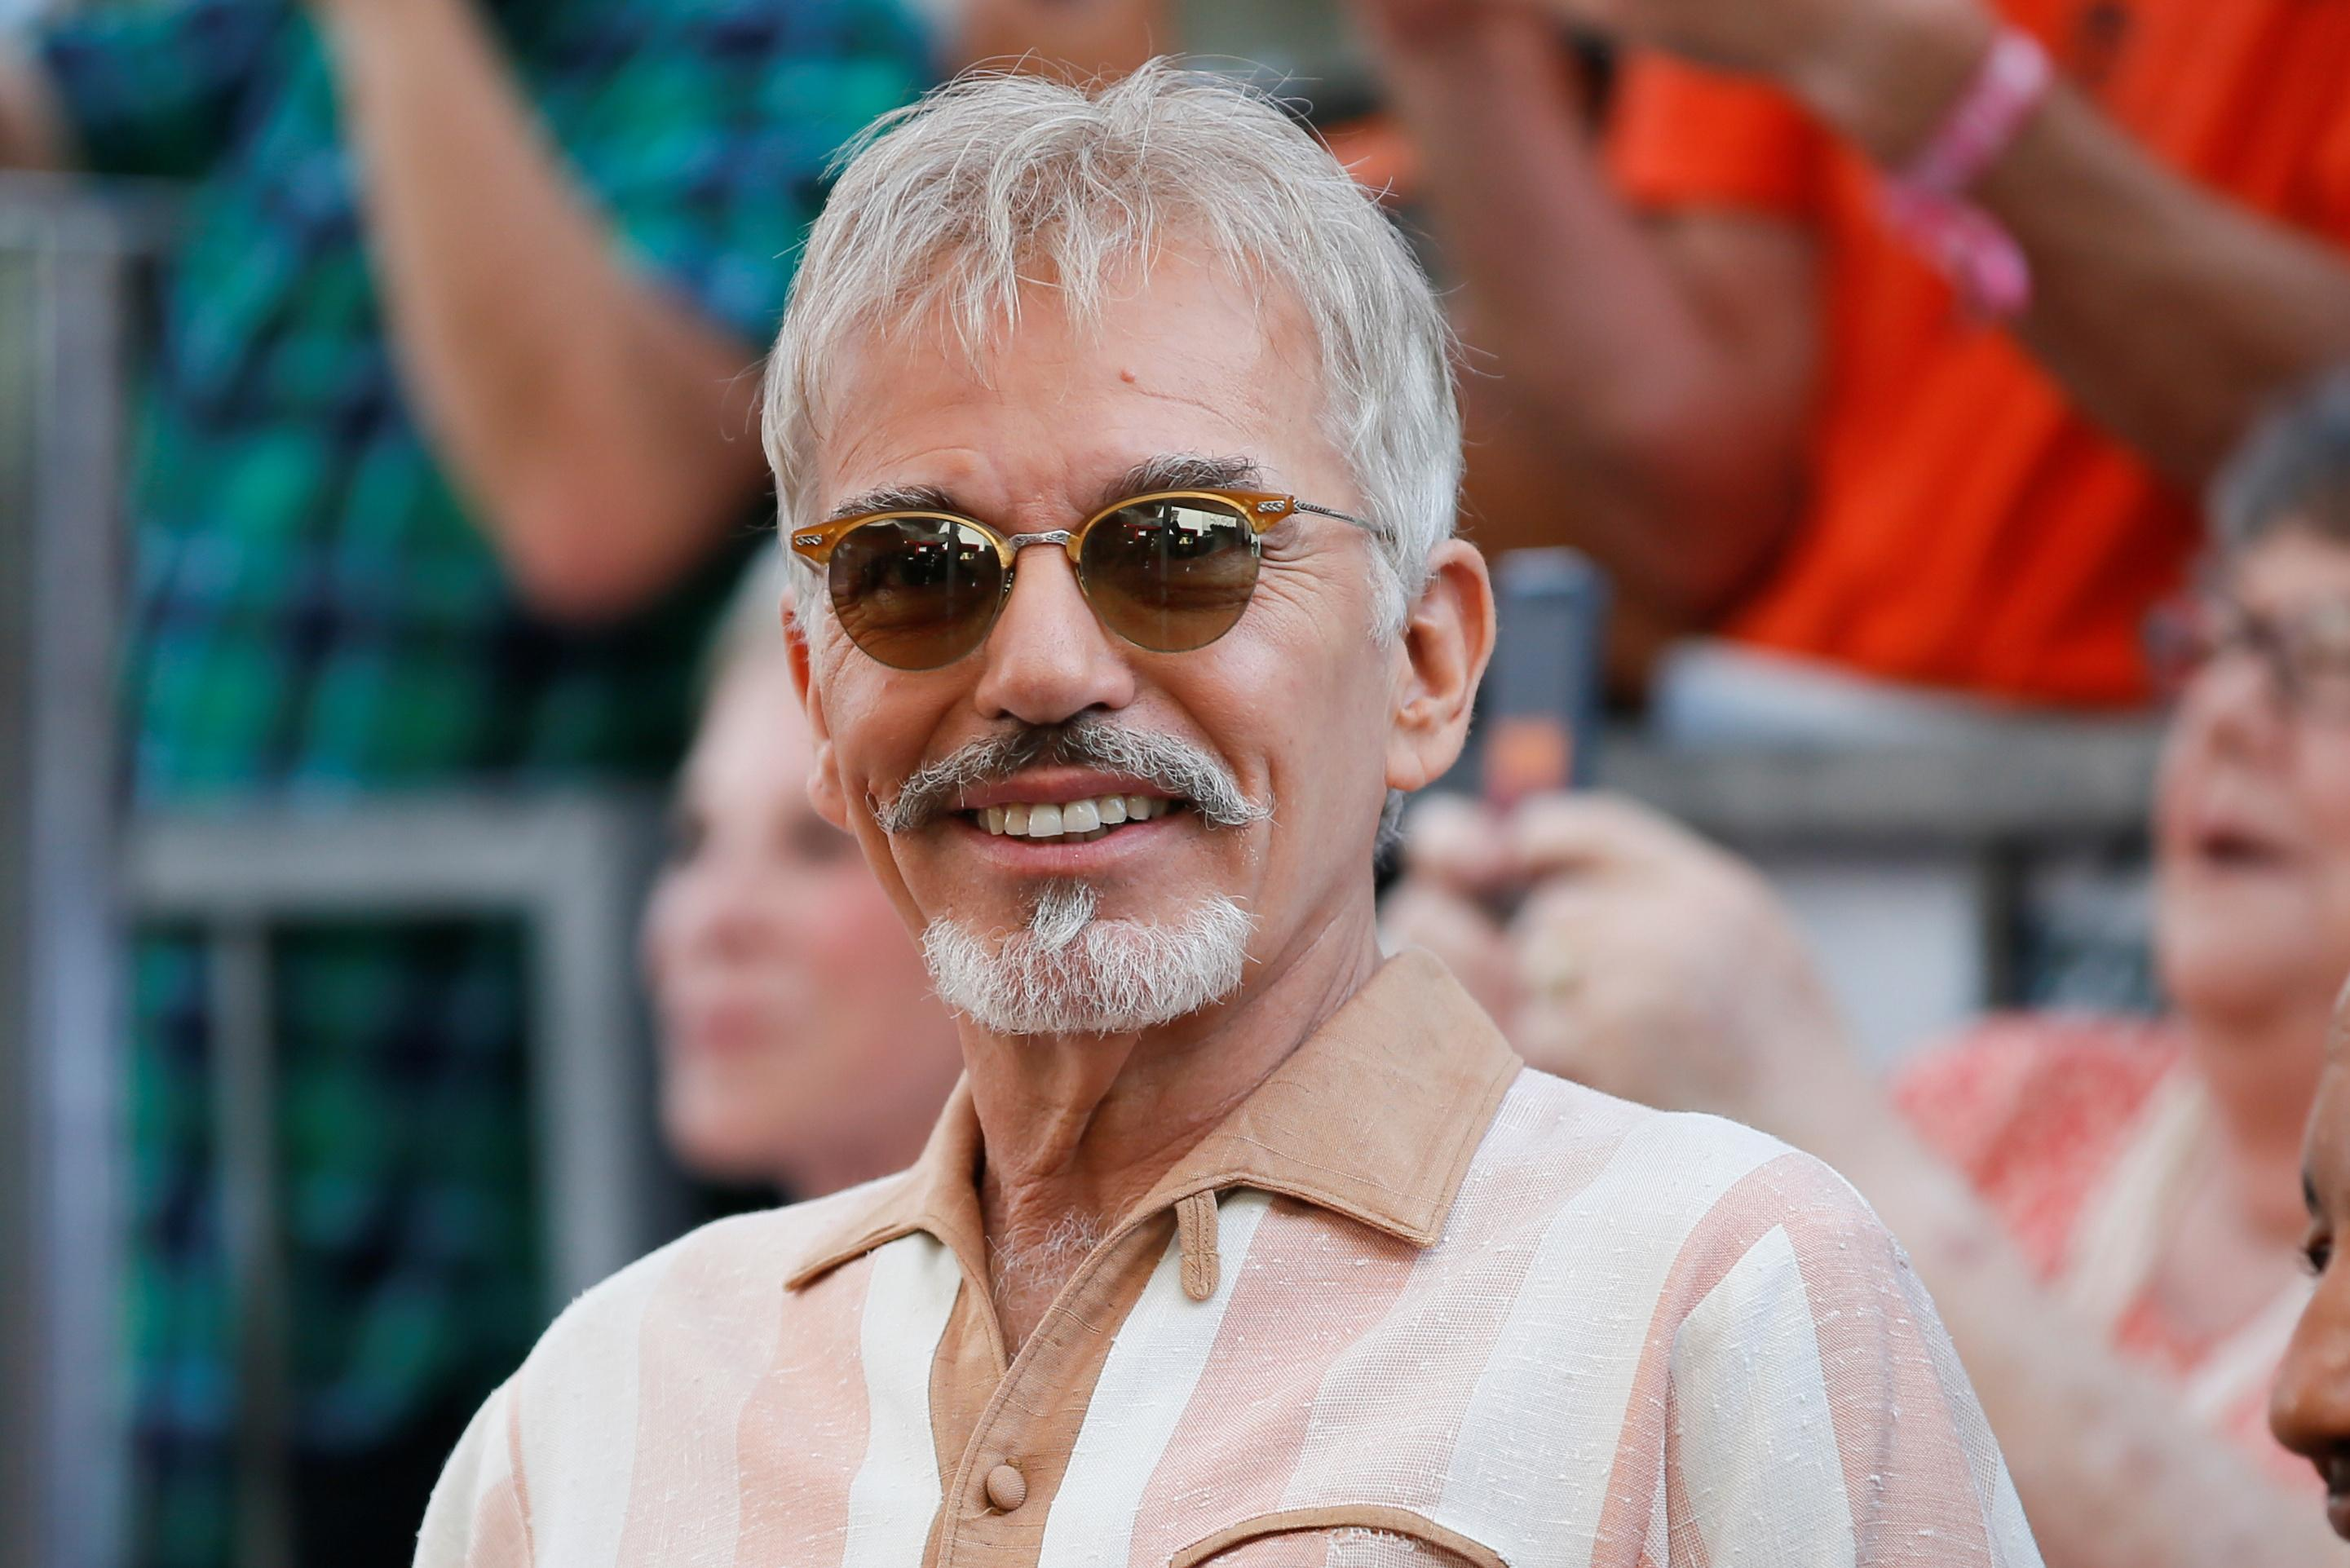 billy bob thornton tattoobilly bob thornton fargo, billy bob thornton young, billy bob thornton angelina, billy bob thornton instagram, billy bob thornton 2016, billy bob thornton height, billy bob thornton angelina перевод, billy bob thornton wiki, billy bob thornton goliath, billy bob thornton фильмография, billy bob thornton bald, billy bob thornton movies, billy bob thornton 2017, billy bob thornton imdb, billy bob thornton tattoo, billy bob thornton twitter, billy bob thornton band, billy bob thornton net worth, billy bob thornton oscar, billy bob thornton wife